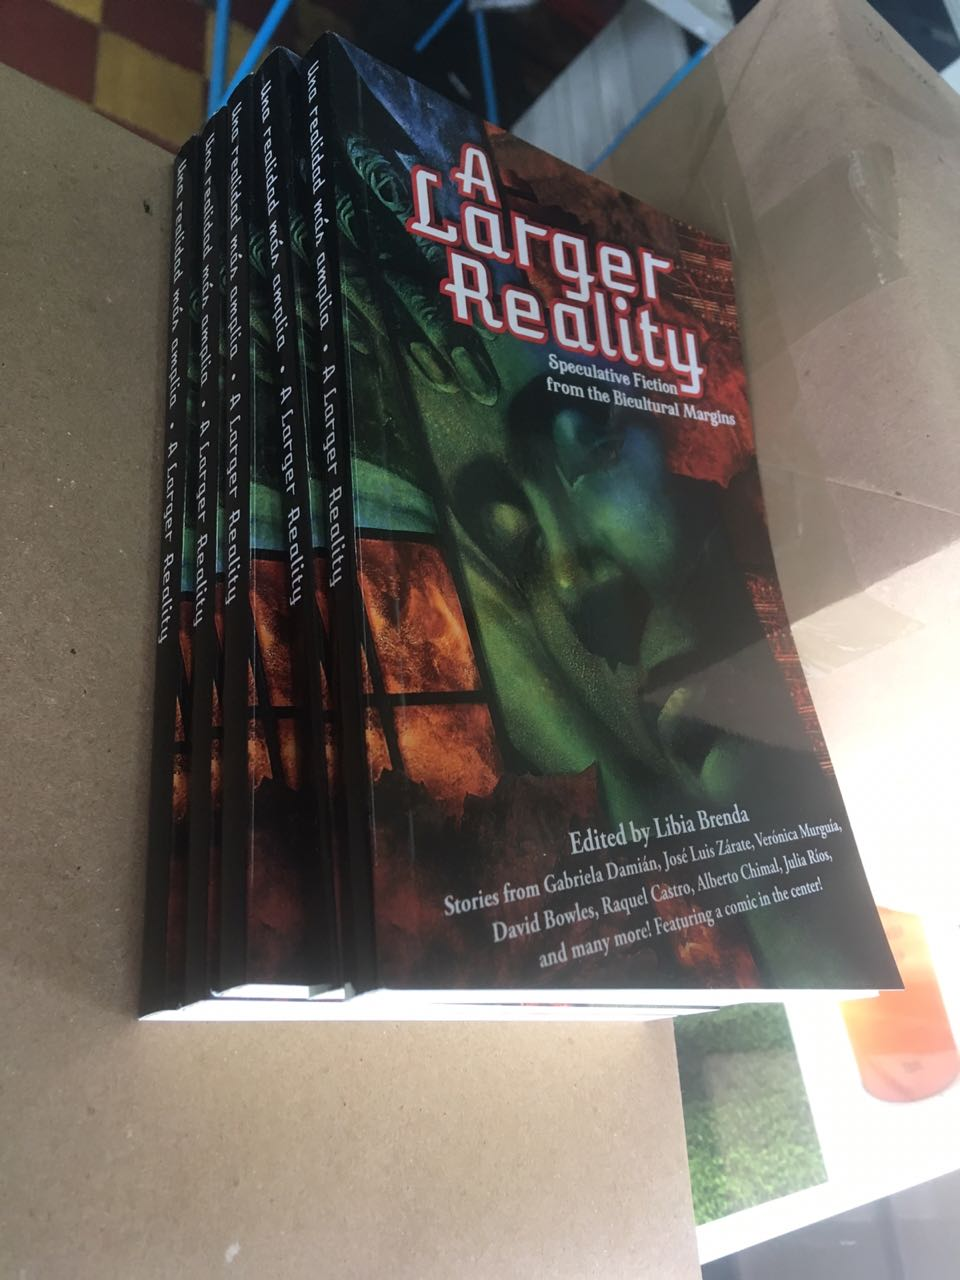 Finished copies of A Larger Reality